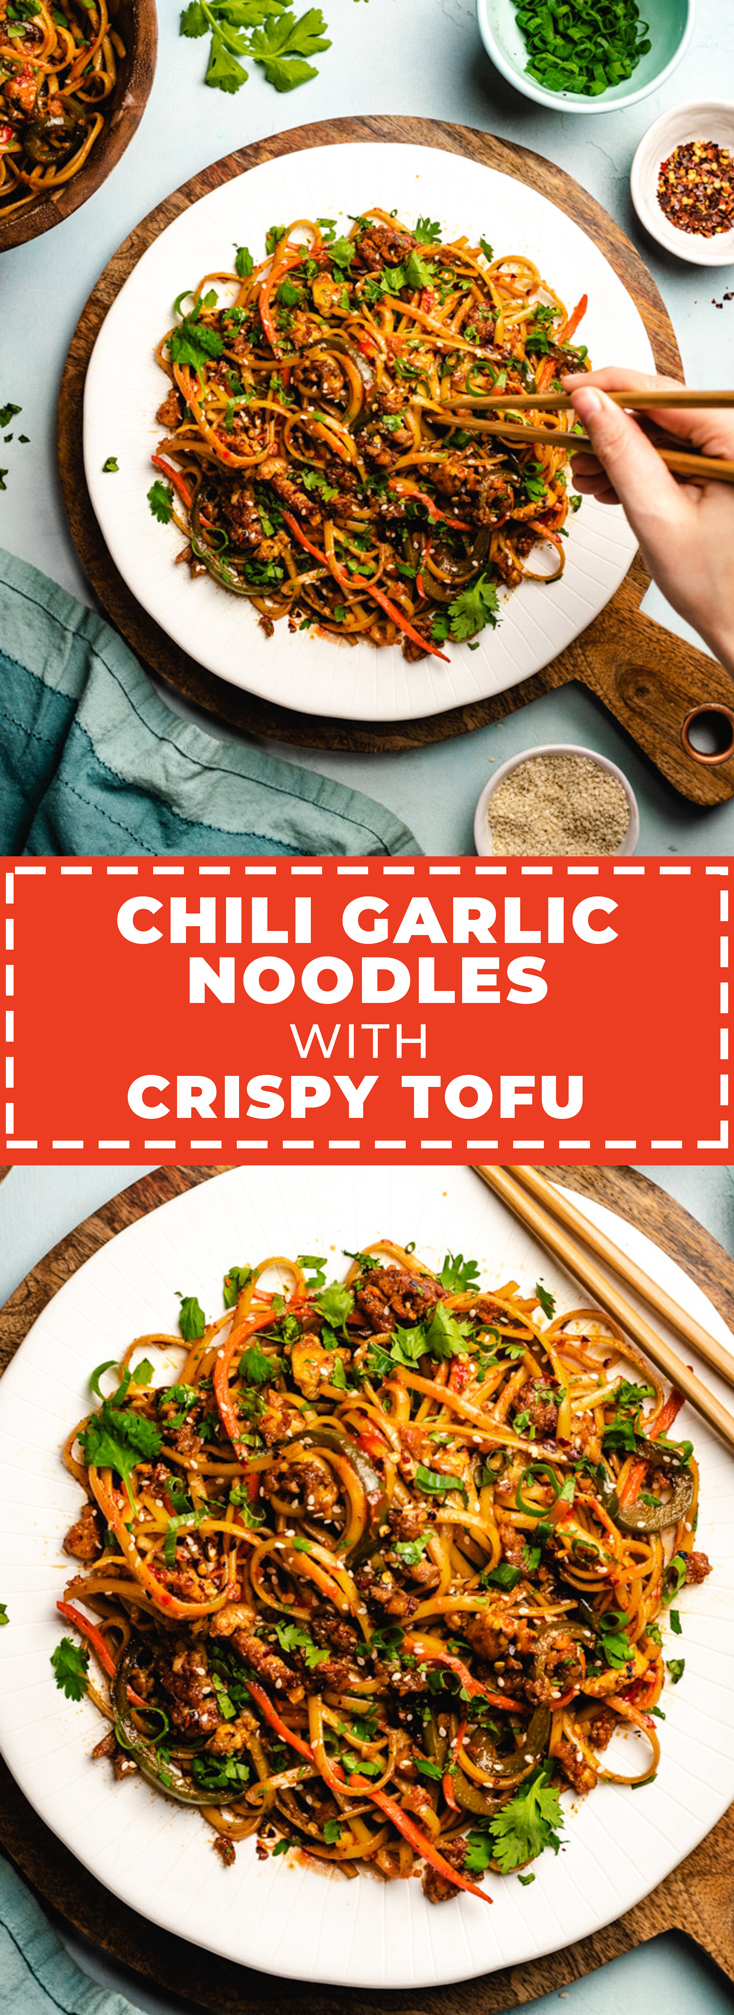 If you're craving spicy Asian food, these Chili Garlic Noodles with Crispy Tofu are saucy satisfaction in a bowl. Make it a big bowl, by the way, because you're going to want to load up. The noodles can be served hot, cold, or at room temperature and-- bonus-- they taste even better when made ahead of time so all of those intense flavors can mingle.   hostthetoast.com